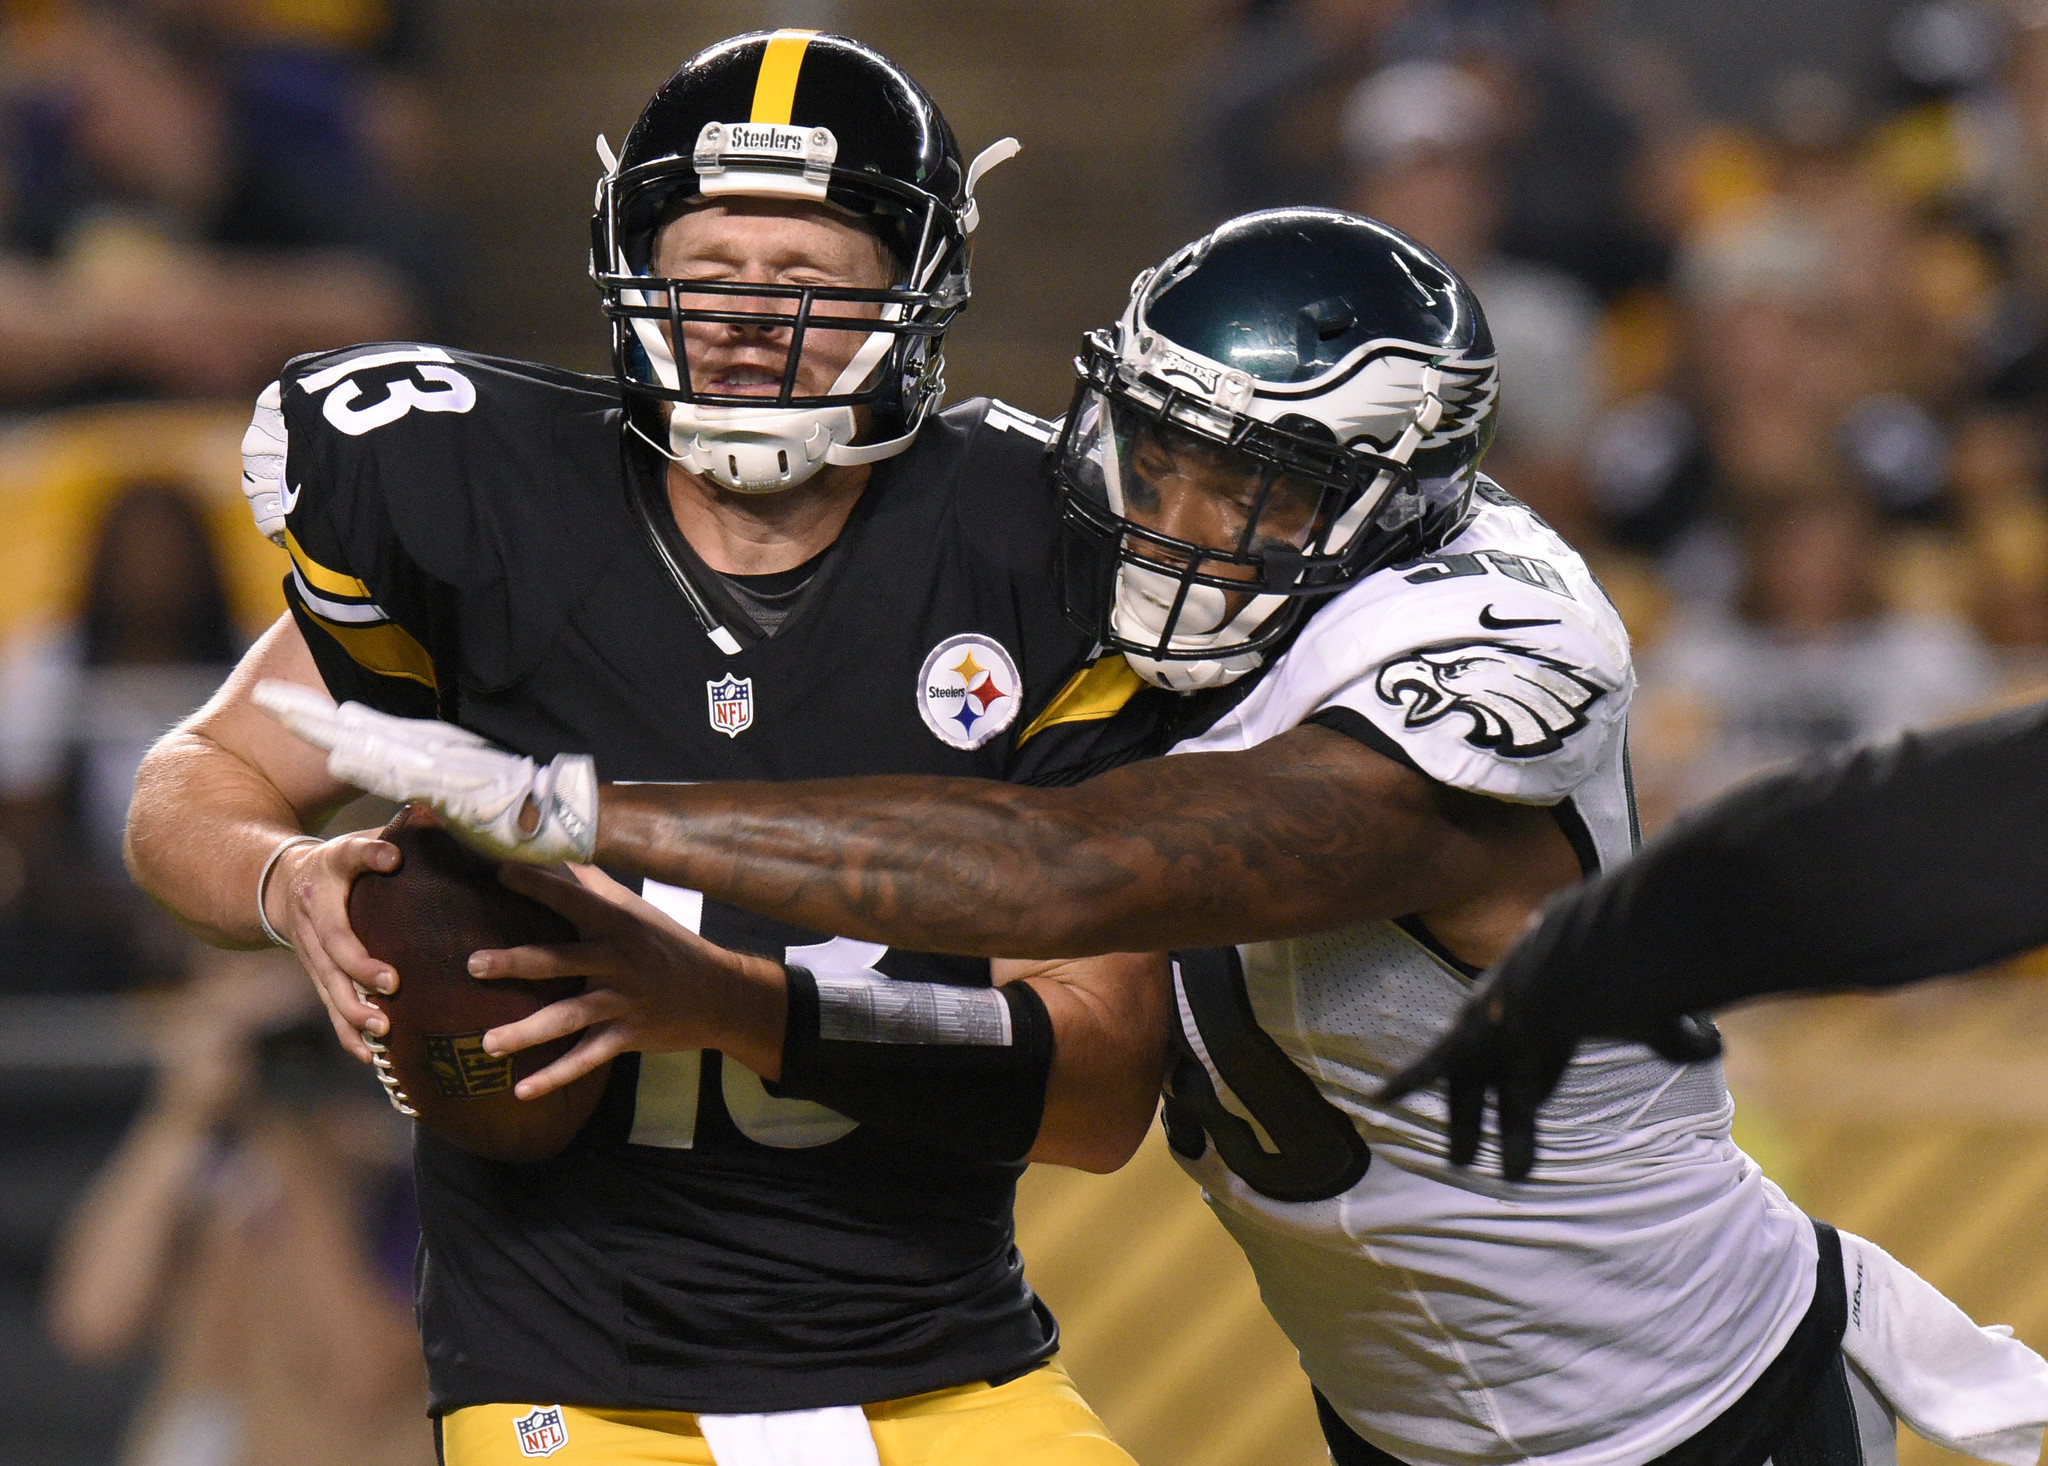 Mc-five-takeaways-from-eagles-17-0-preseason-victory-over-steelers-20160819